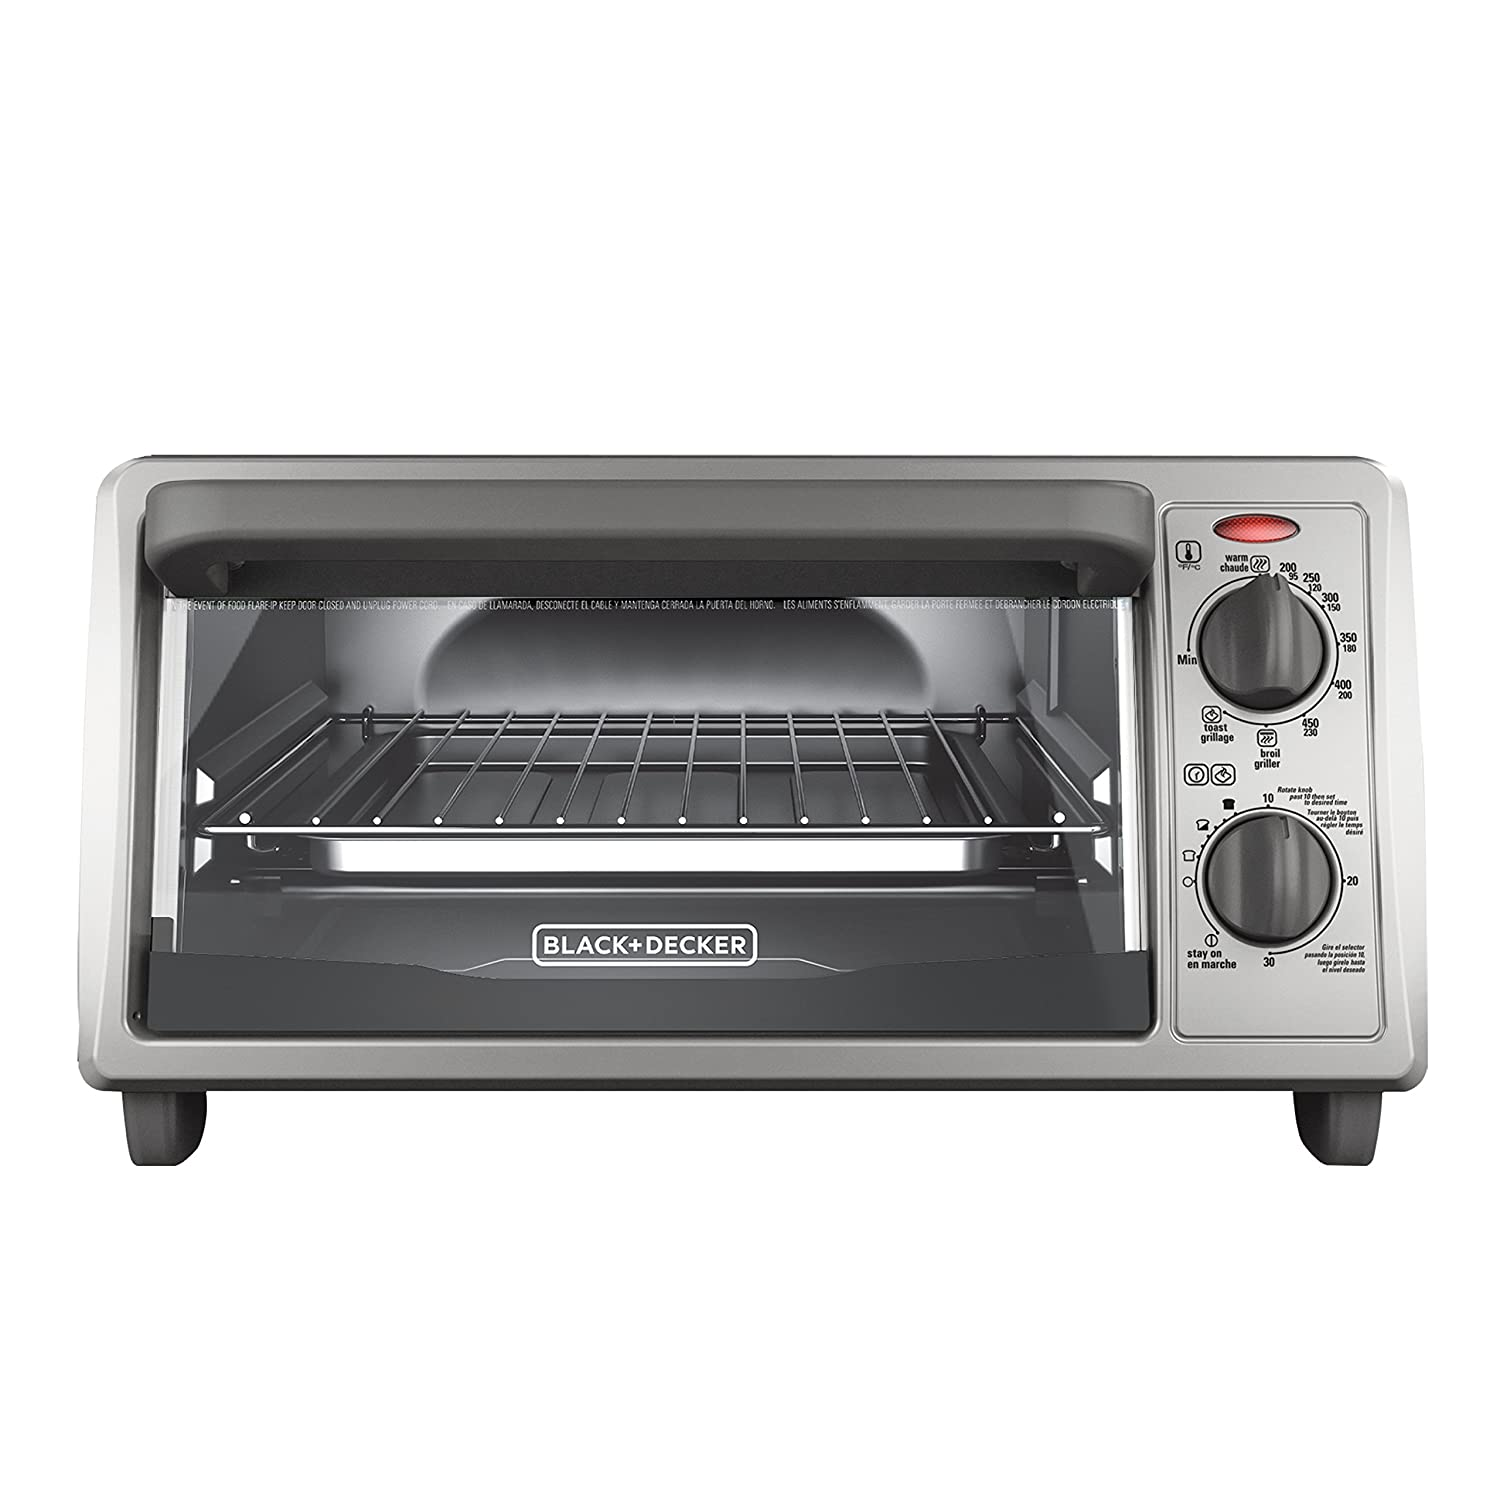 Black & Decker – Slice Toaster Oven